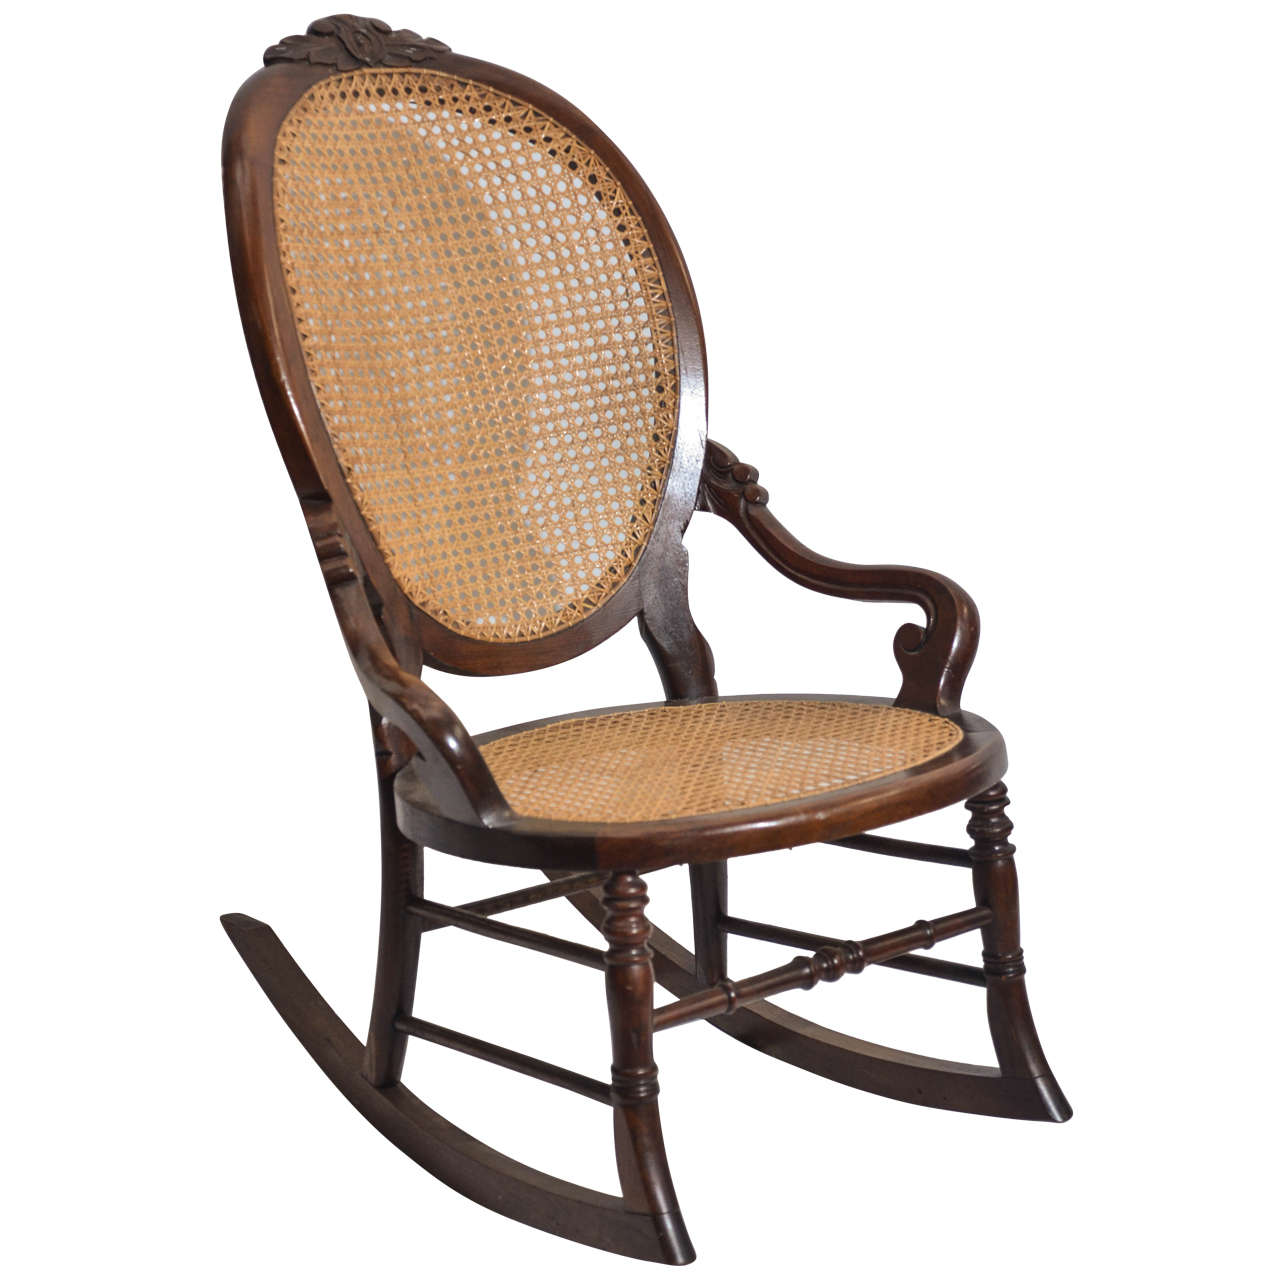 Rock Chair Victorian Walnut Ladys Rocking Chair For Sale At 1stdibs